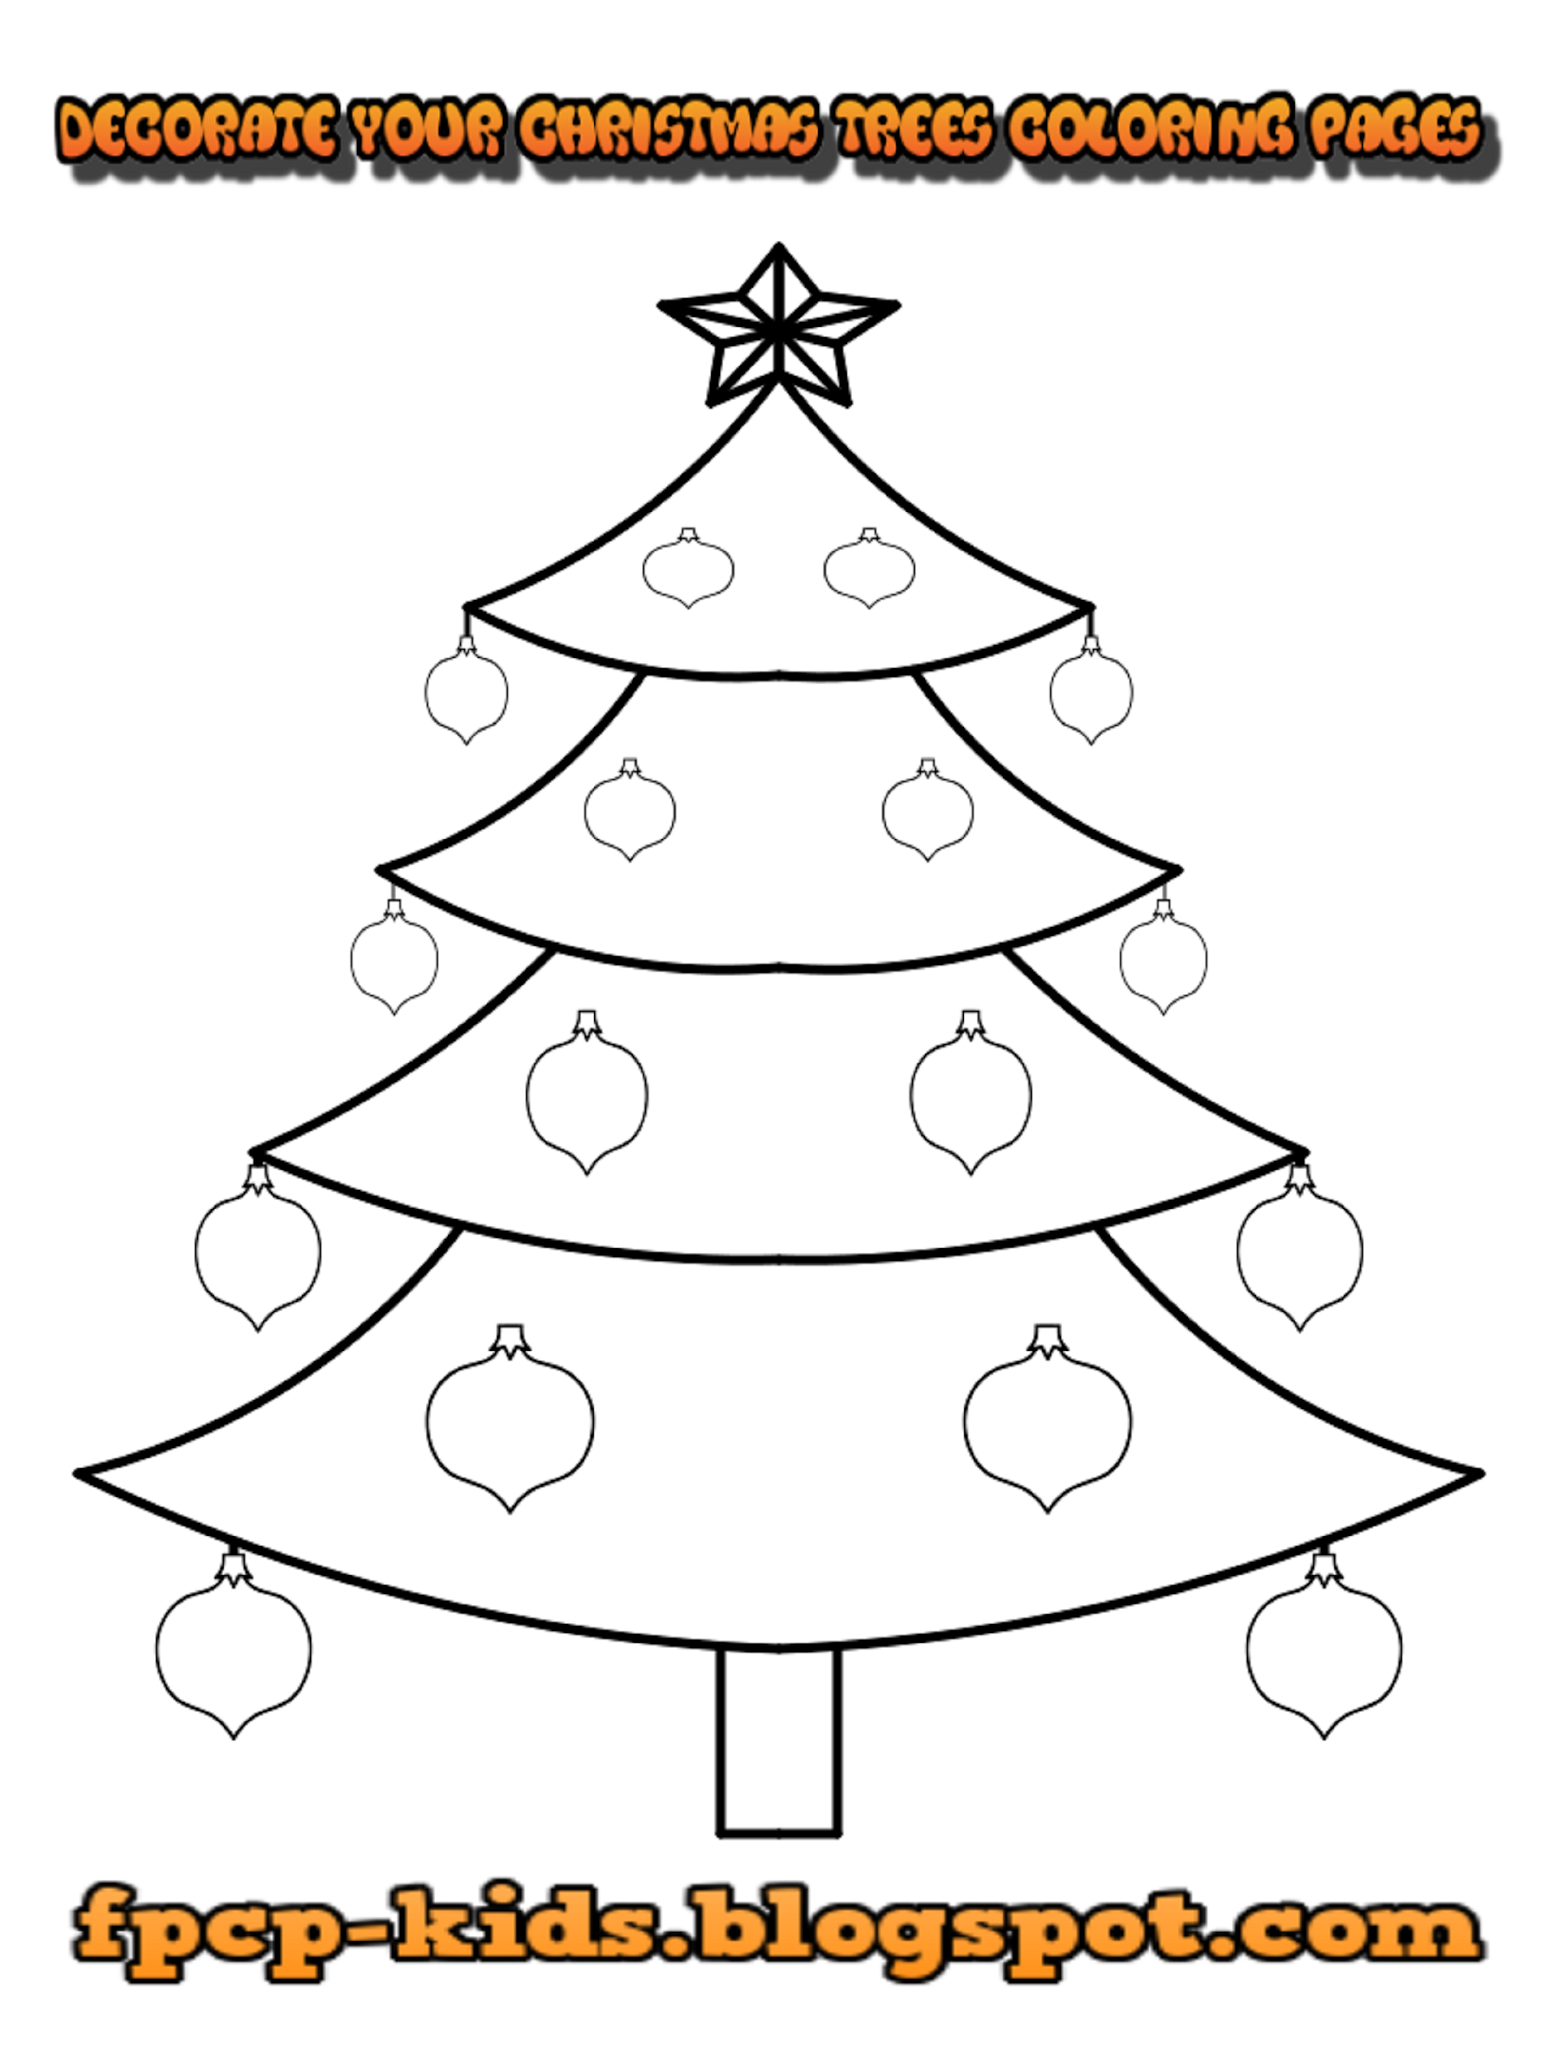 Decorate Your Christmas Trees Coloring Pages Christmas Trees Free Printable C Tree Coloring Page Christmas Tree Coloring Page Free Printable Coloring Pages